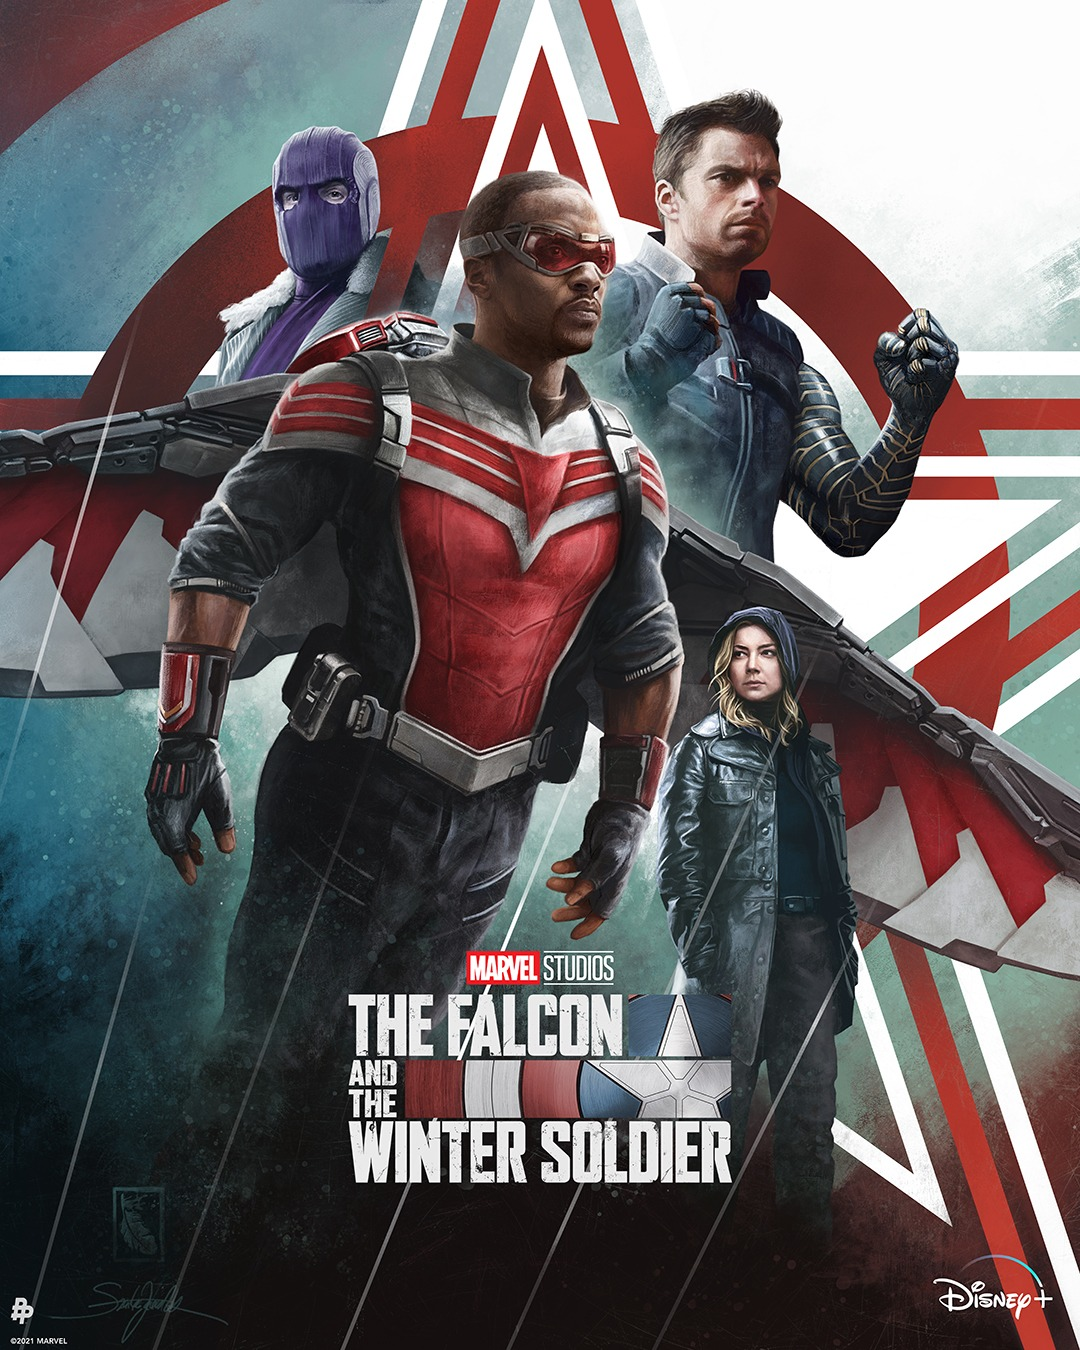 The Falcon and the Winter Soldier SzarkaArt Poster